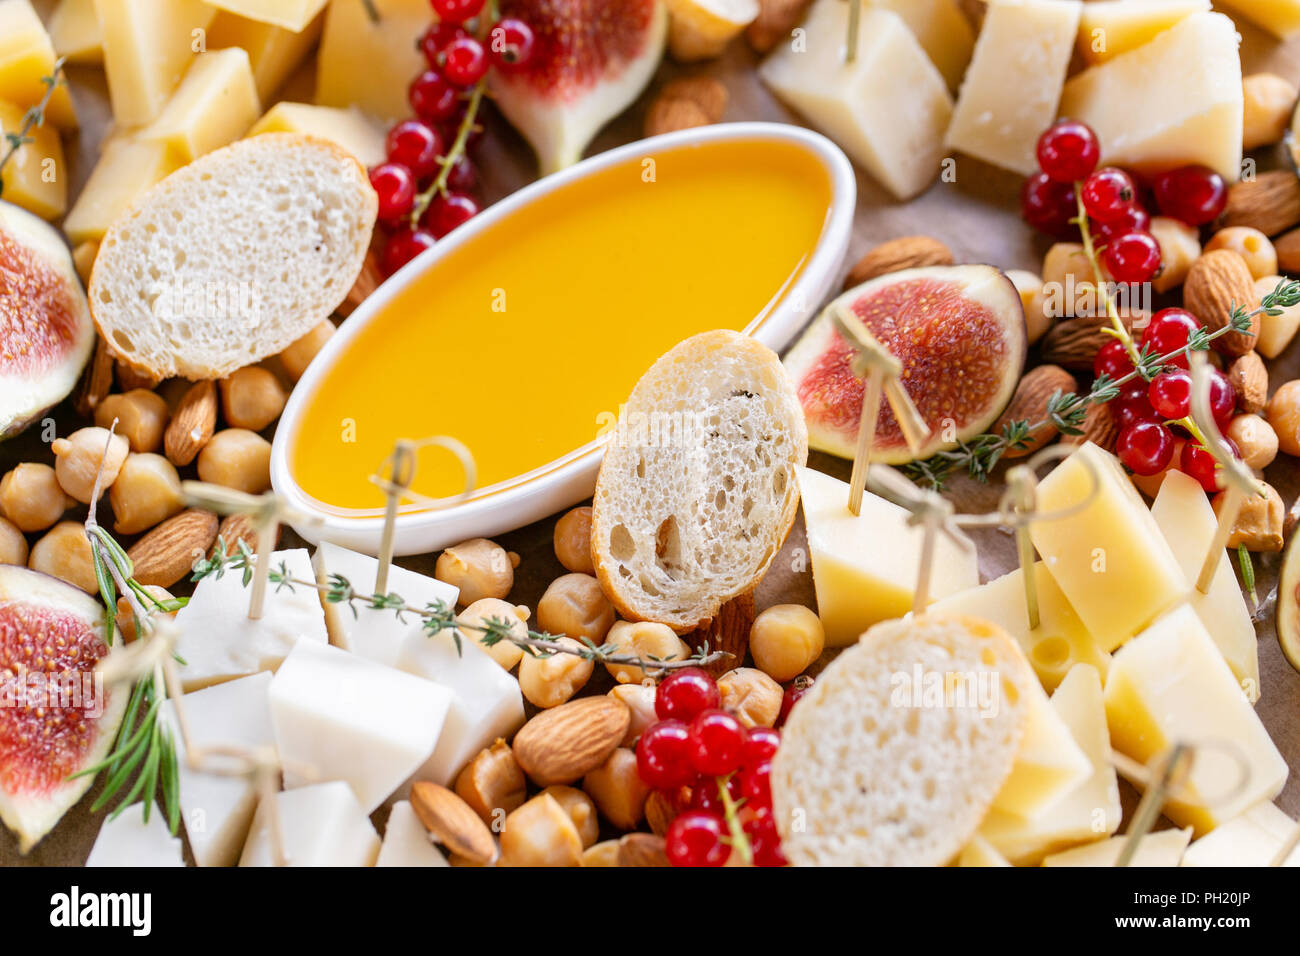 Cheese plate. Delicious cheese mix with baguette croutons, red currant, sweet figs, almond, honey on wooden table. Tasting dish on a wooden plate. Food for wine. Goat cheese, Parmesan, Gouda - Stock Image